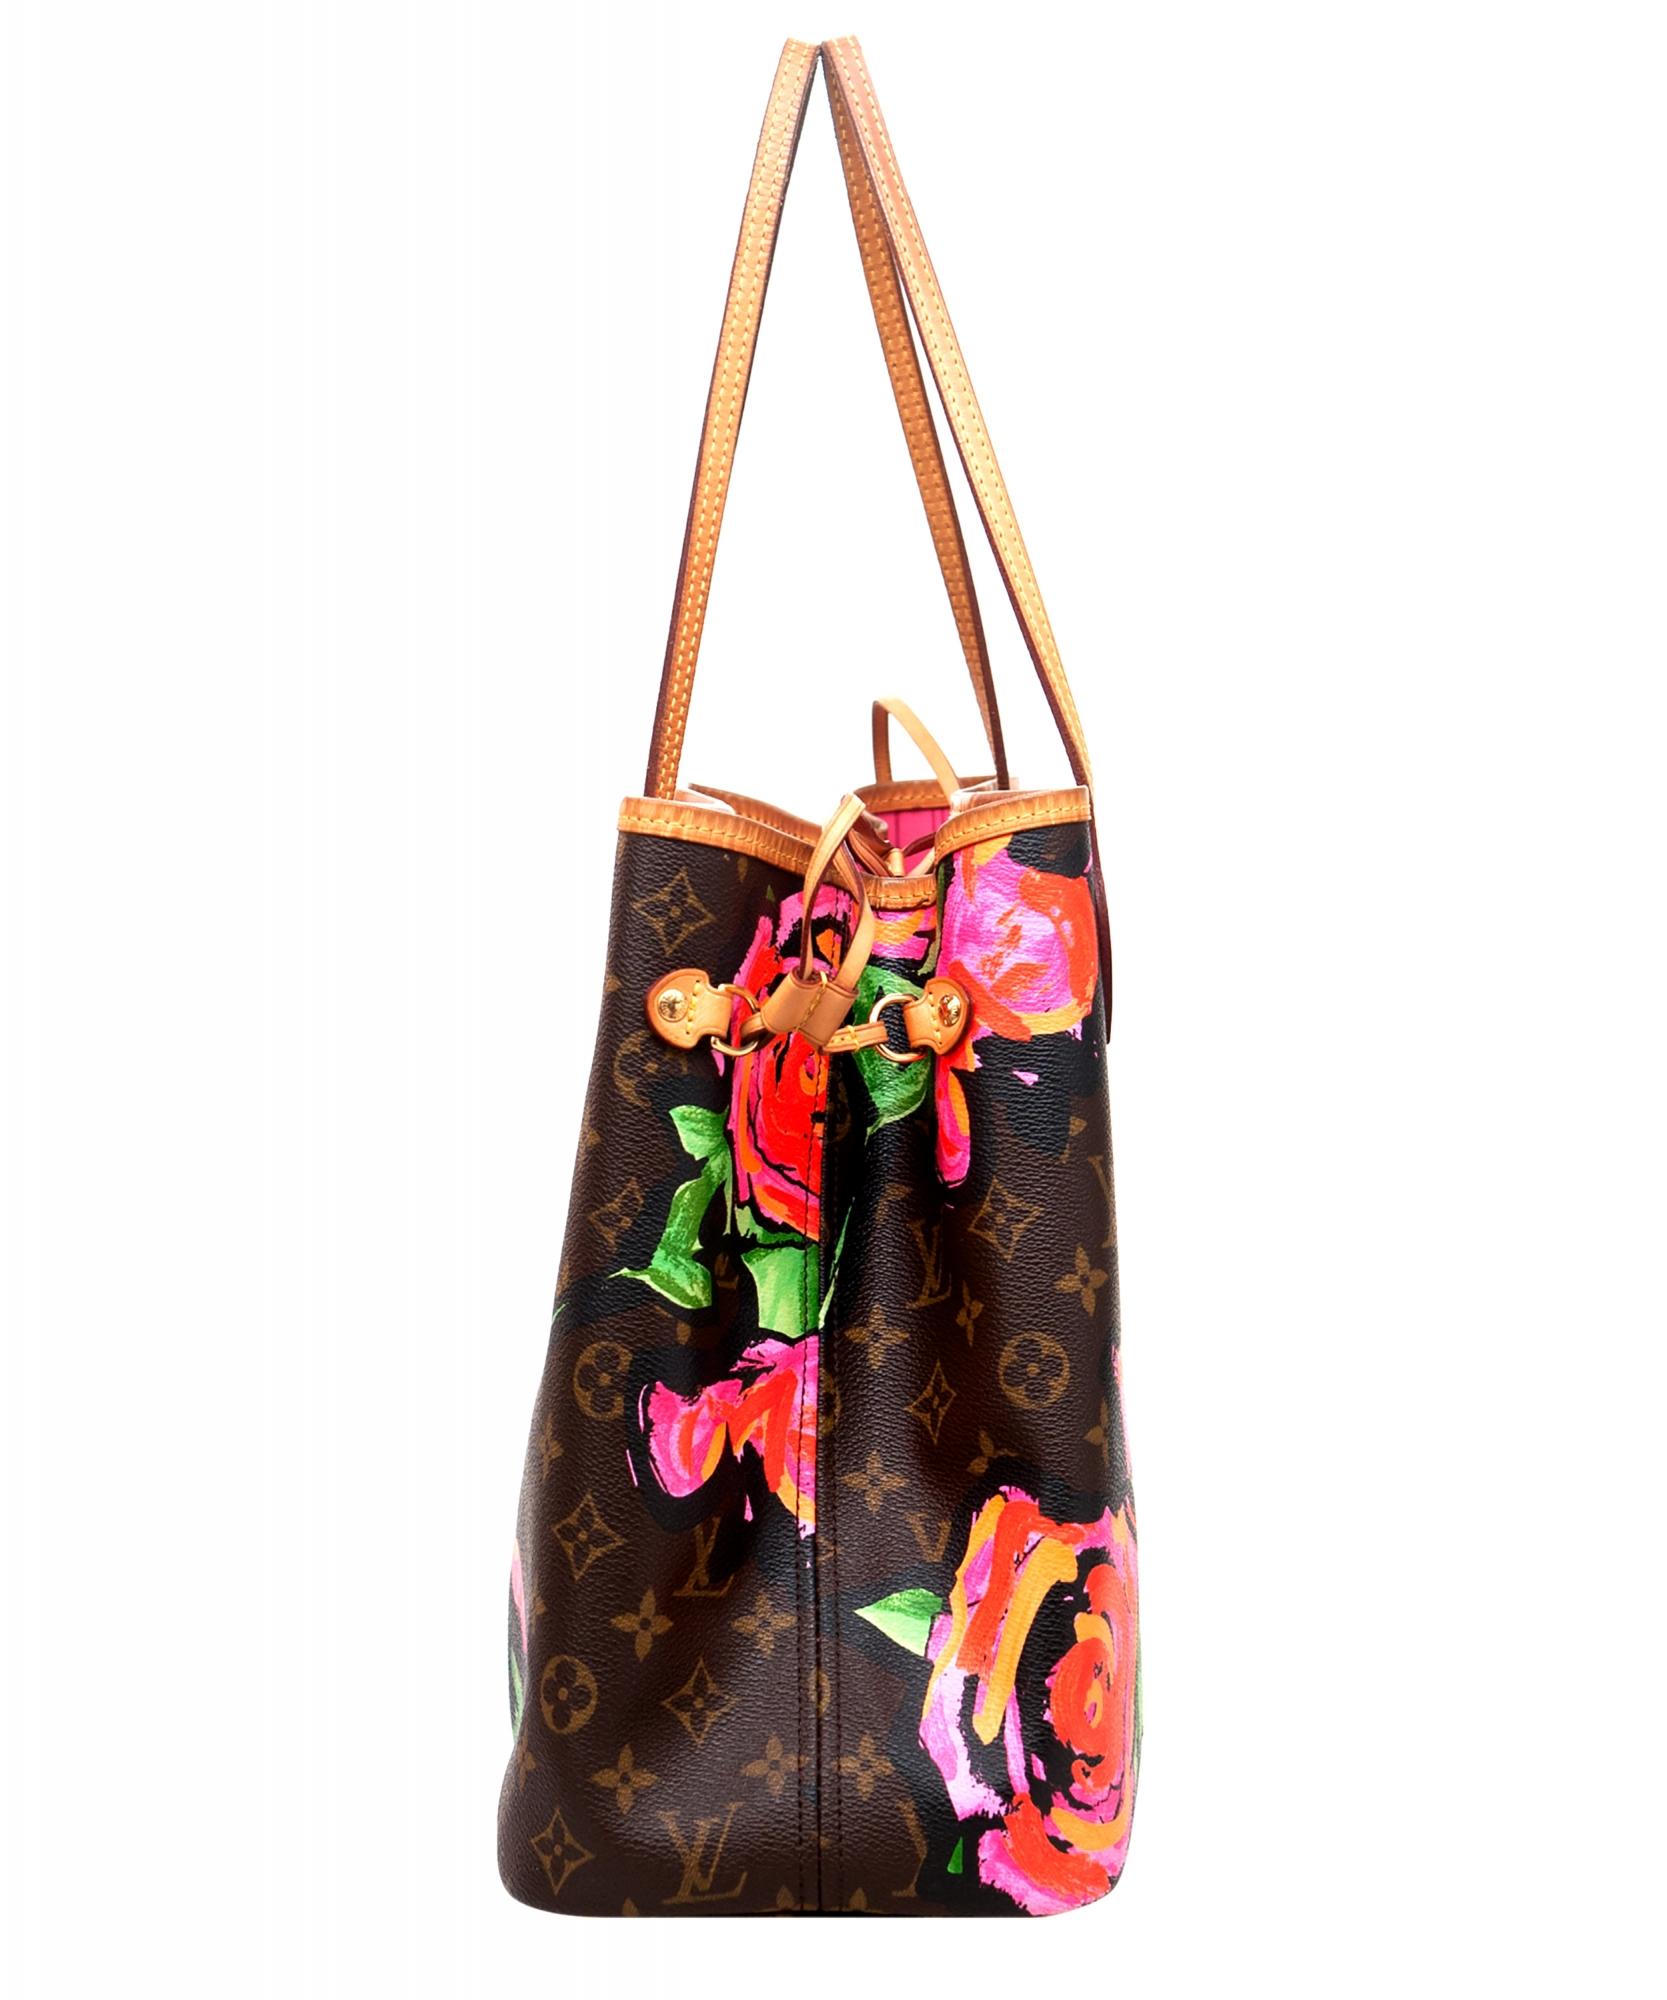 3bad25bbebf9 ... Louis Vuitton Monogram Graffiti Neverfull MM Bag - Limited Edition.  Touch to zoom